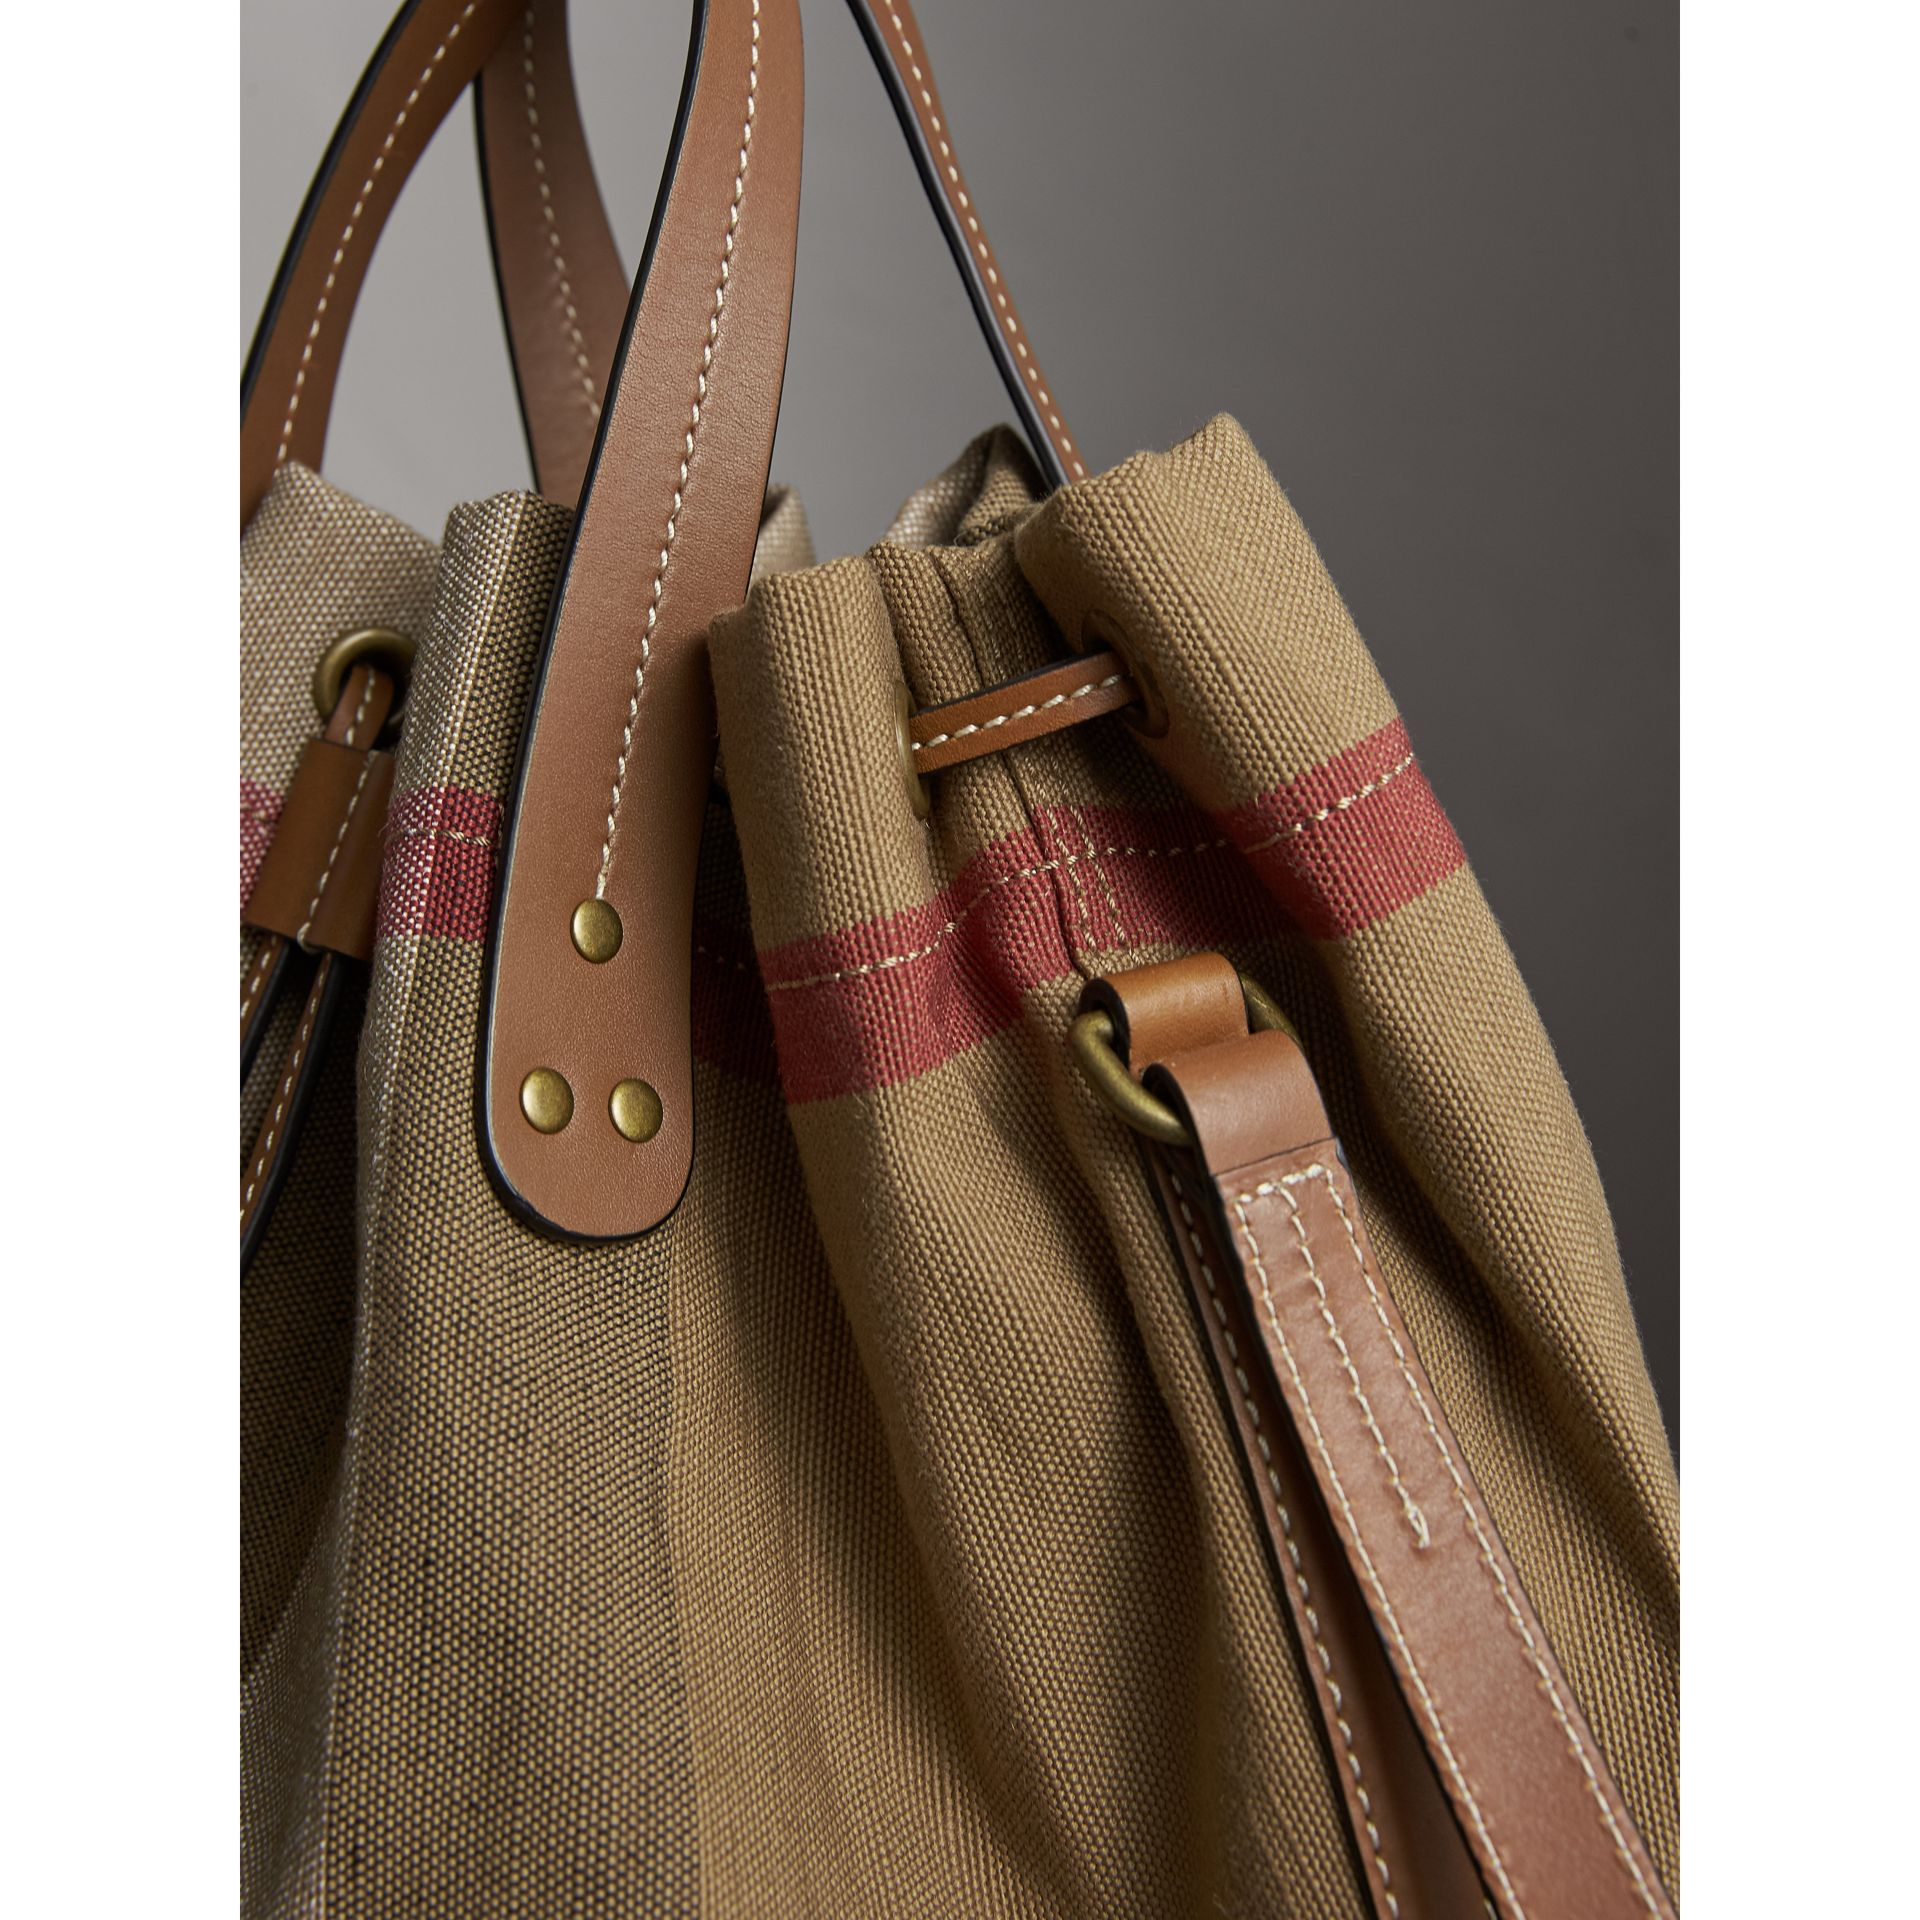 Medium Canvas Check Bucket Bag in Tan - Women | Burberry Hong Kong - gallery image 6